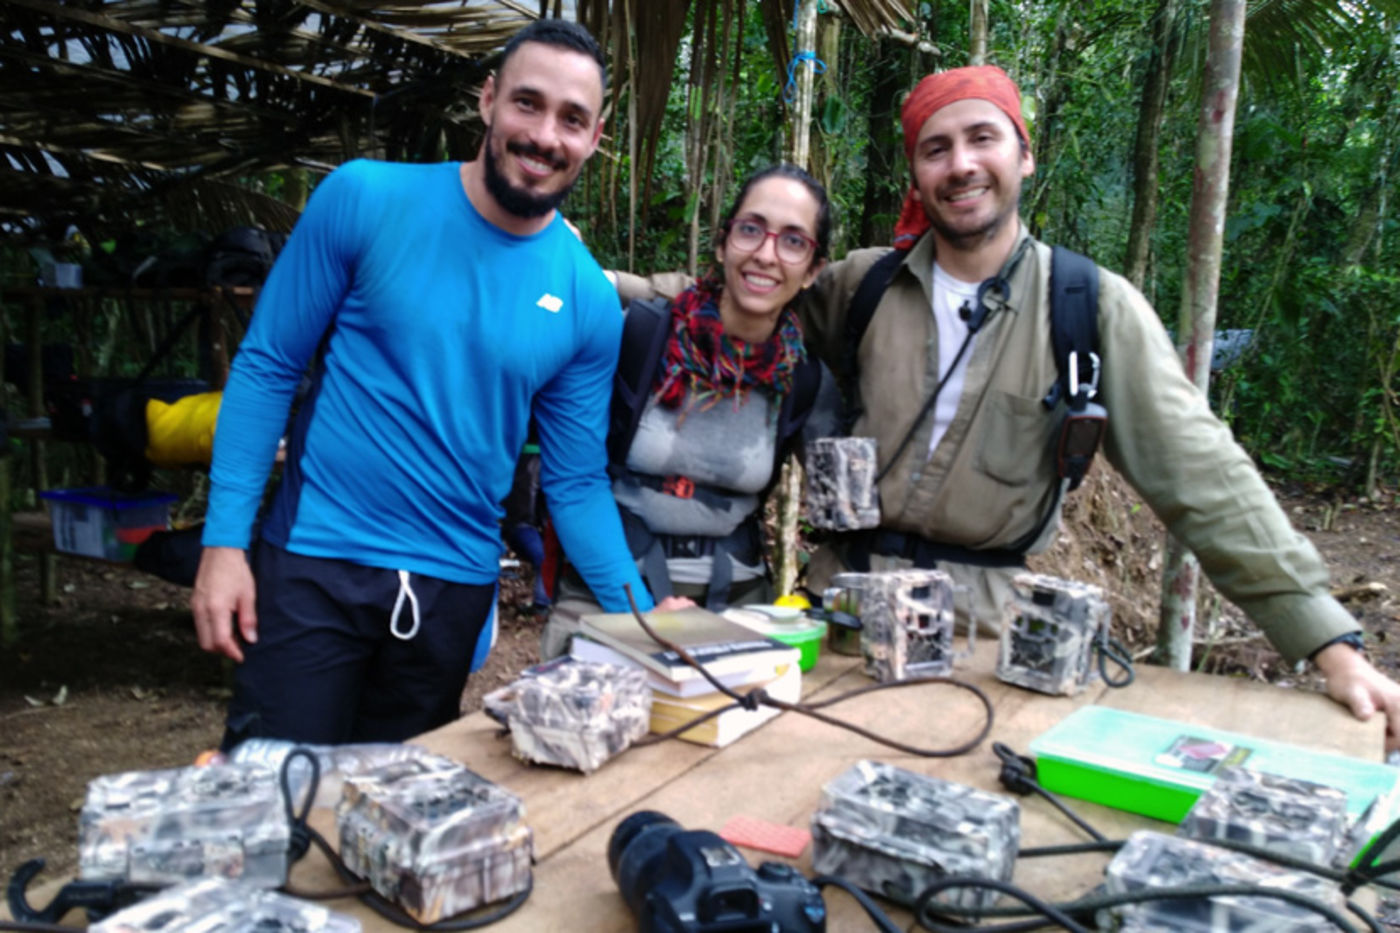 Two men and a woman stand behind a table with several cameras covered in camouflage print. They're at a campsite in the jungle, with lush trees seen in the background.